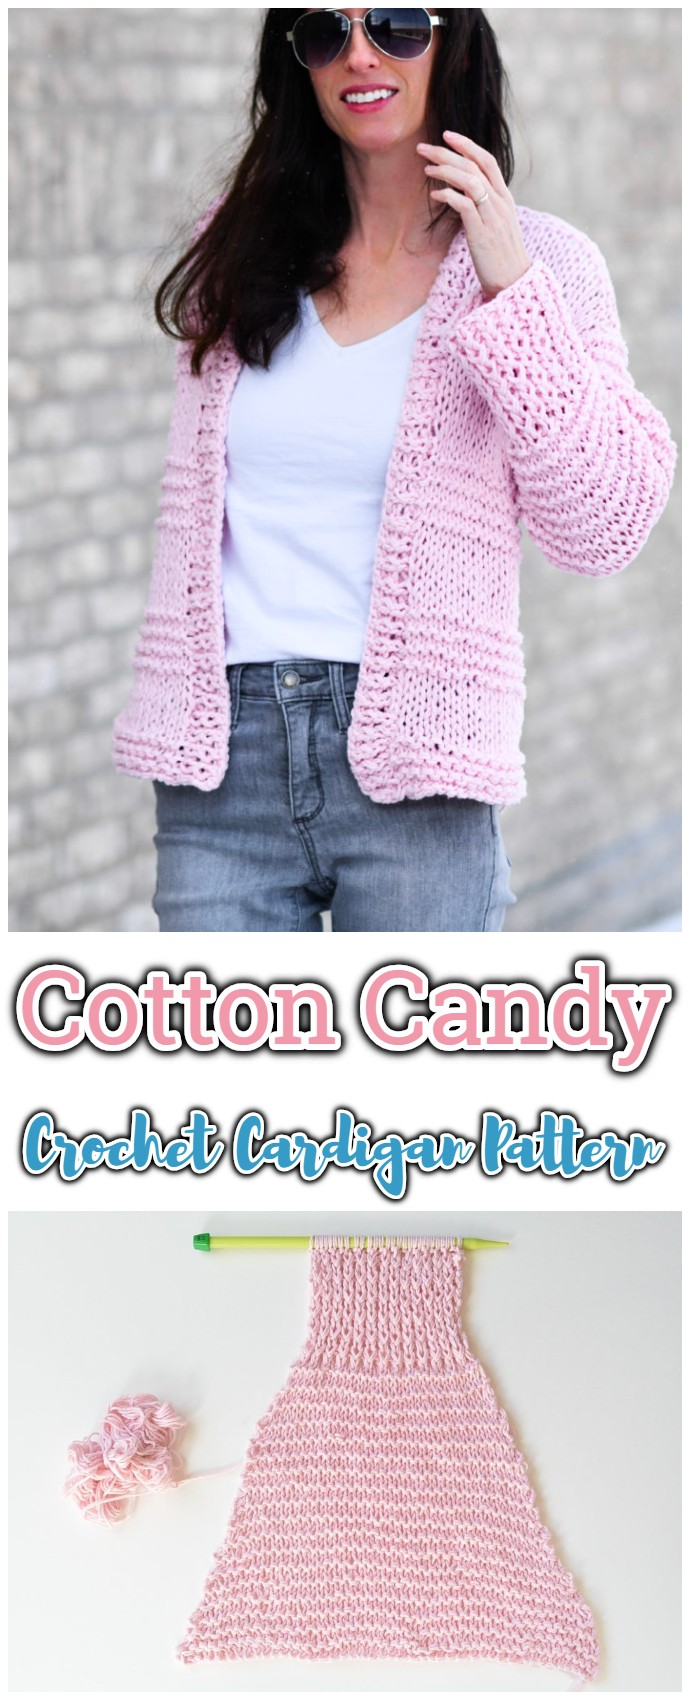 Cotton Candy Crochet Cardigan Pattern